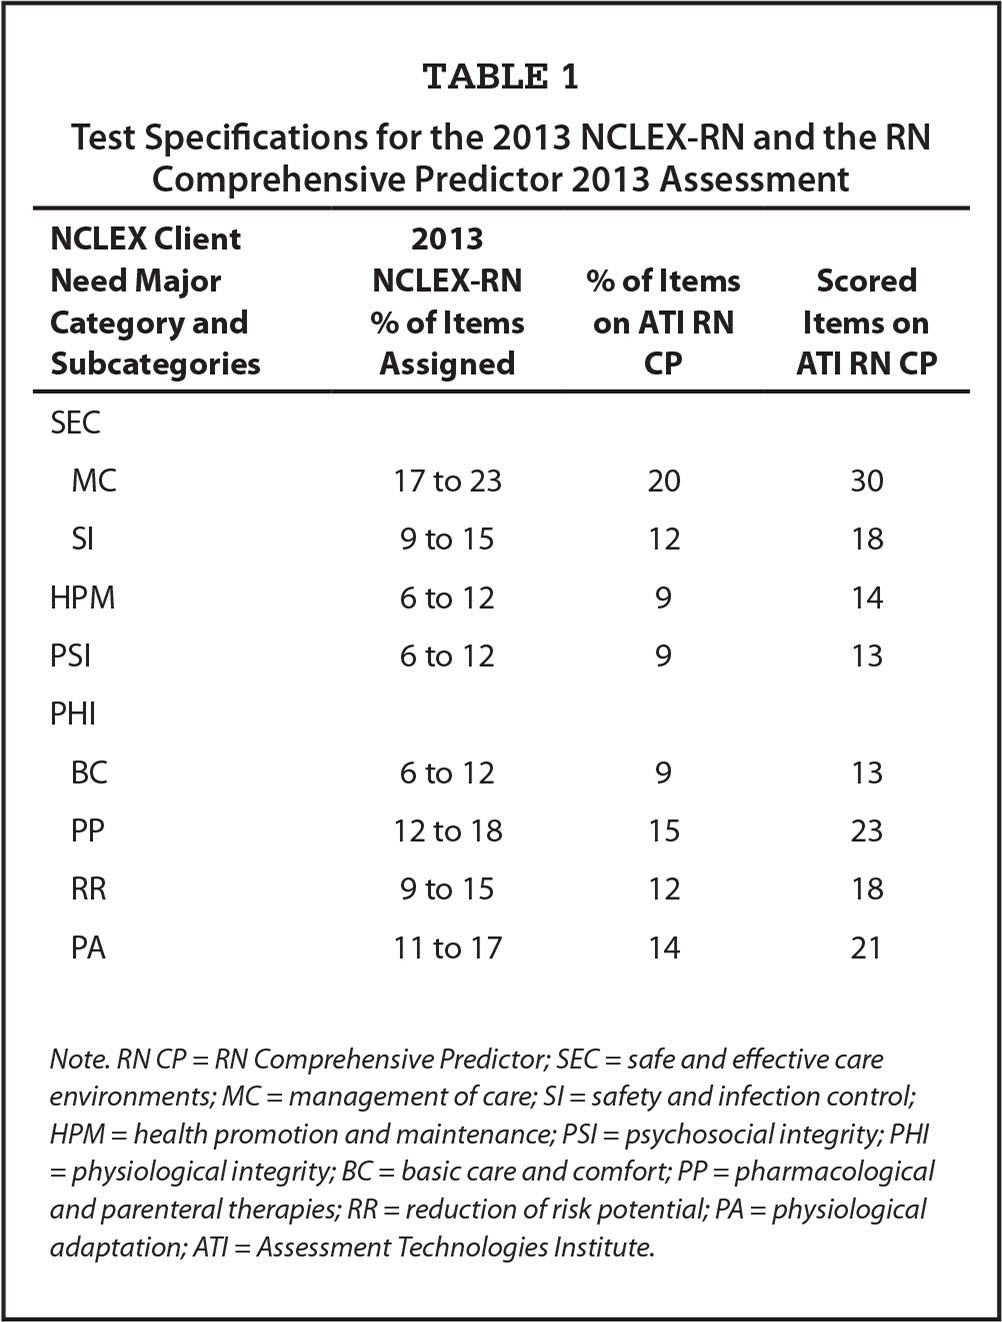 Test Specifications for the 2013 NCLEX-RN and the RN Comprehensive Predictor 2013 Assessment